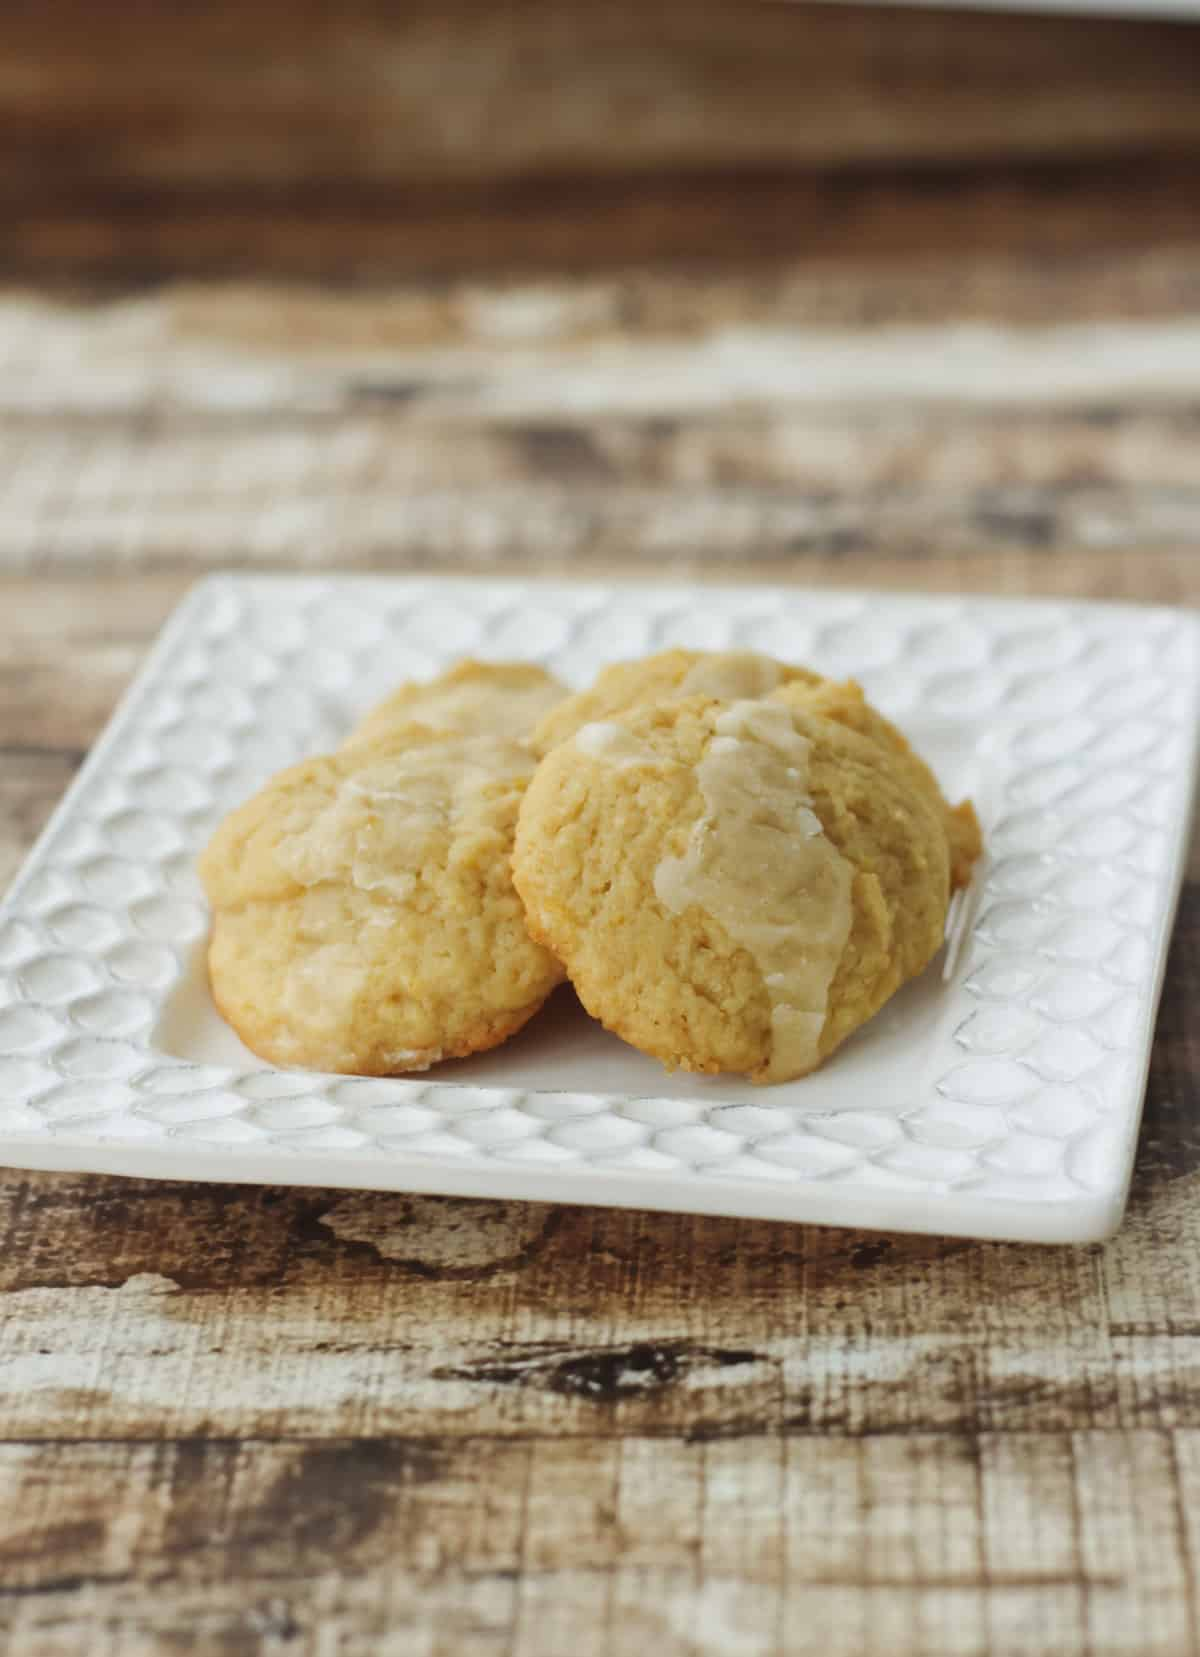 Small pile of lemon cookies with glaze on a square white plate on a wooden background.